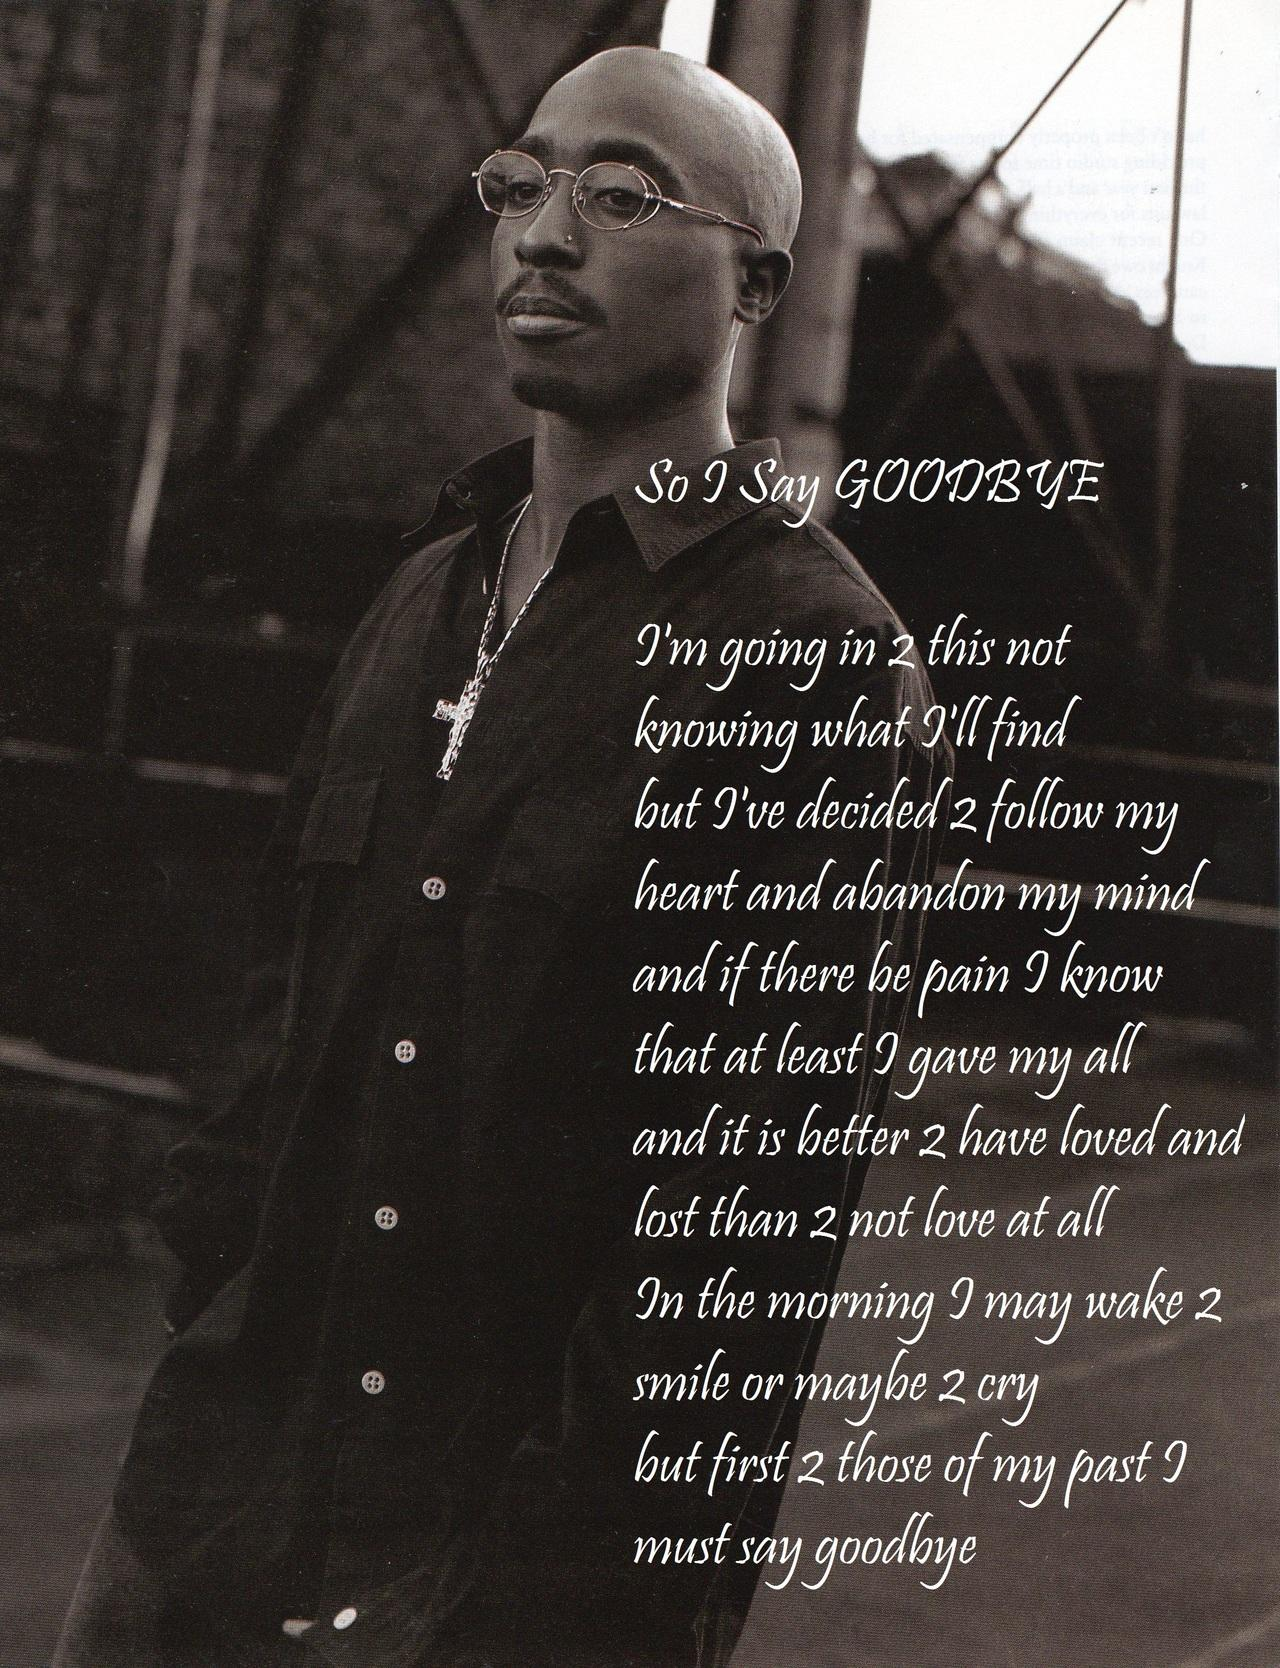 "[Image] To All Graduating Seniors… ""So I say goodbye"" by tupac amaru shakur"